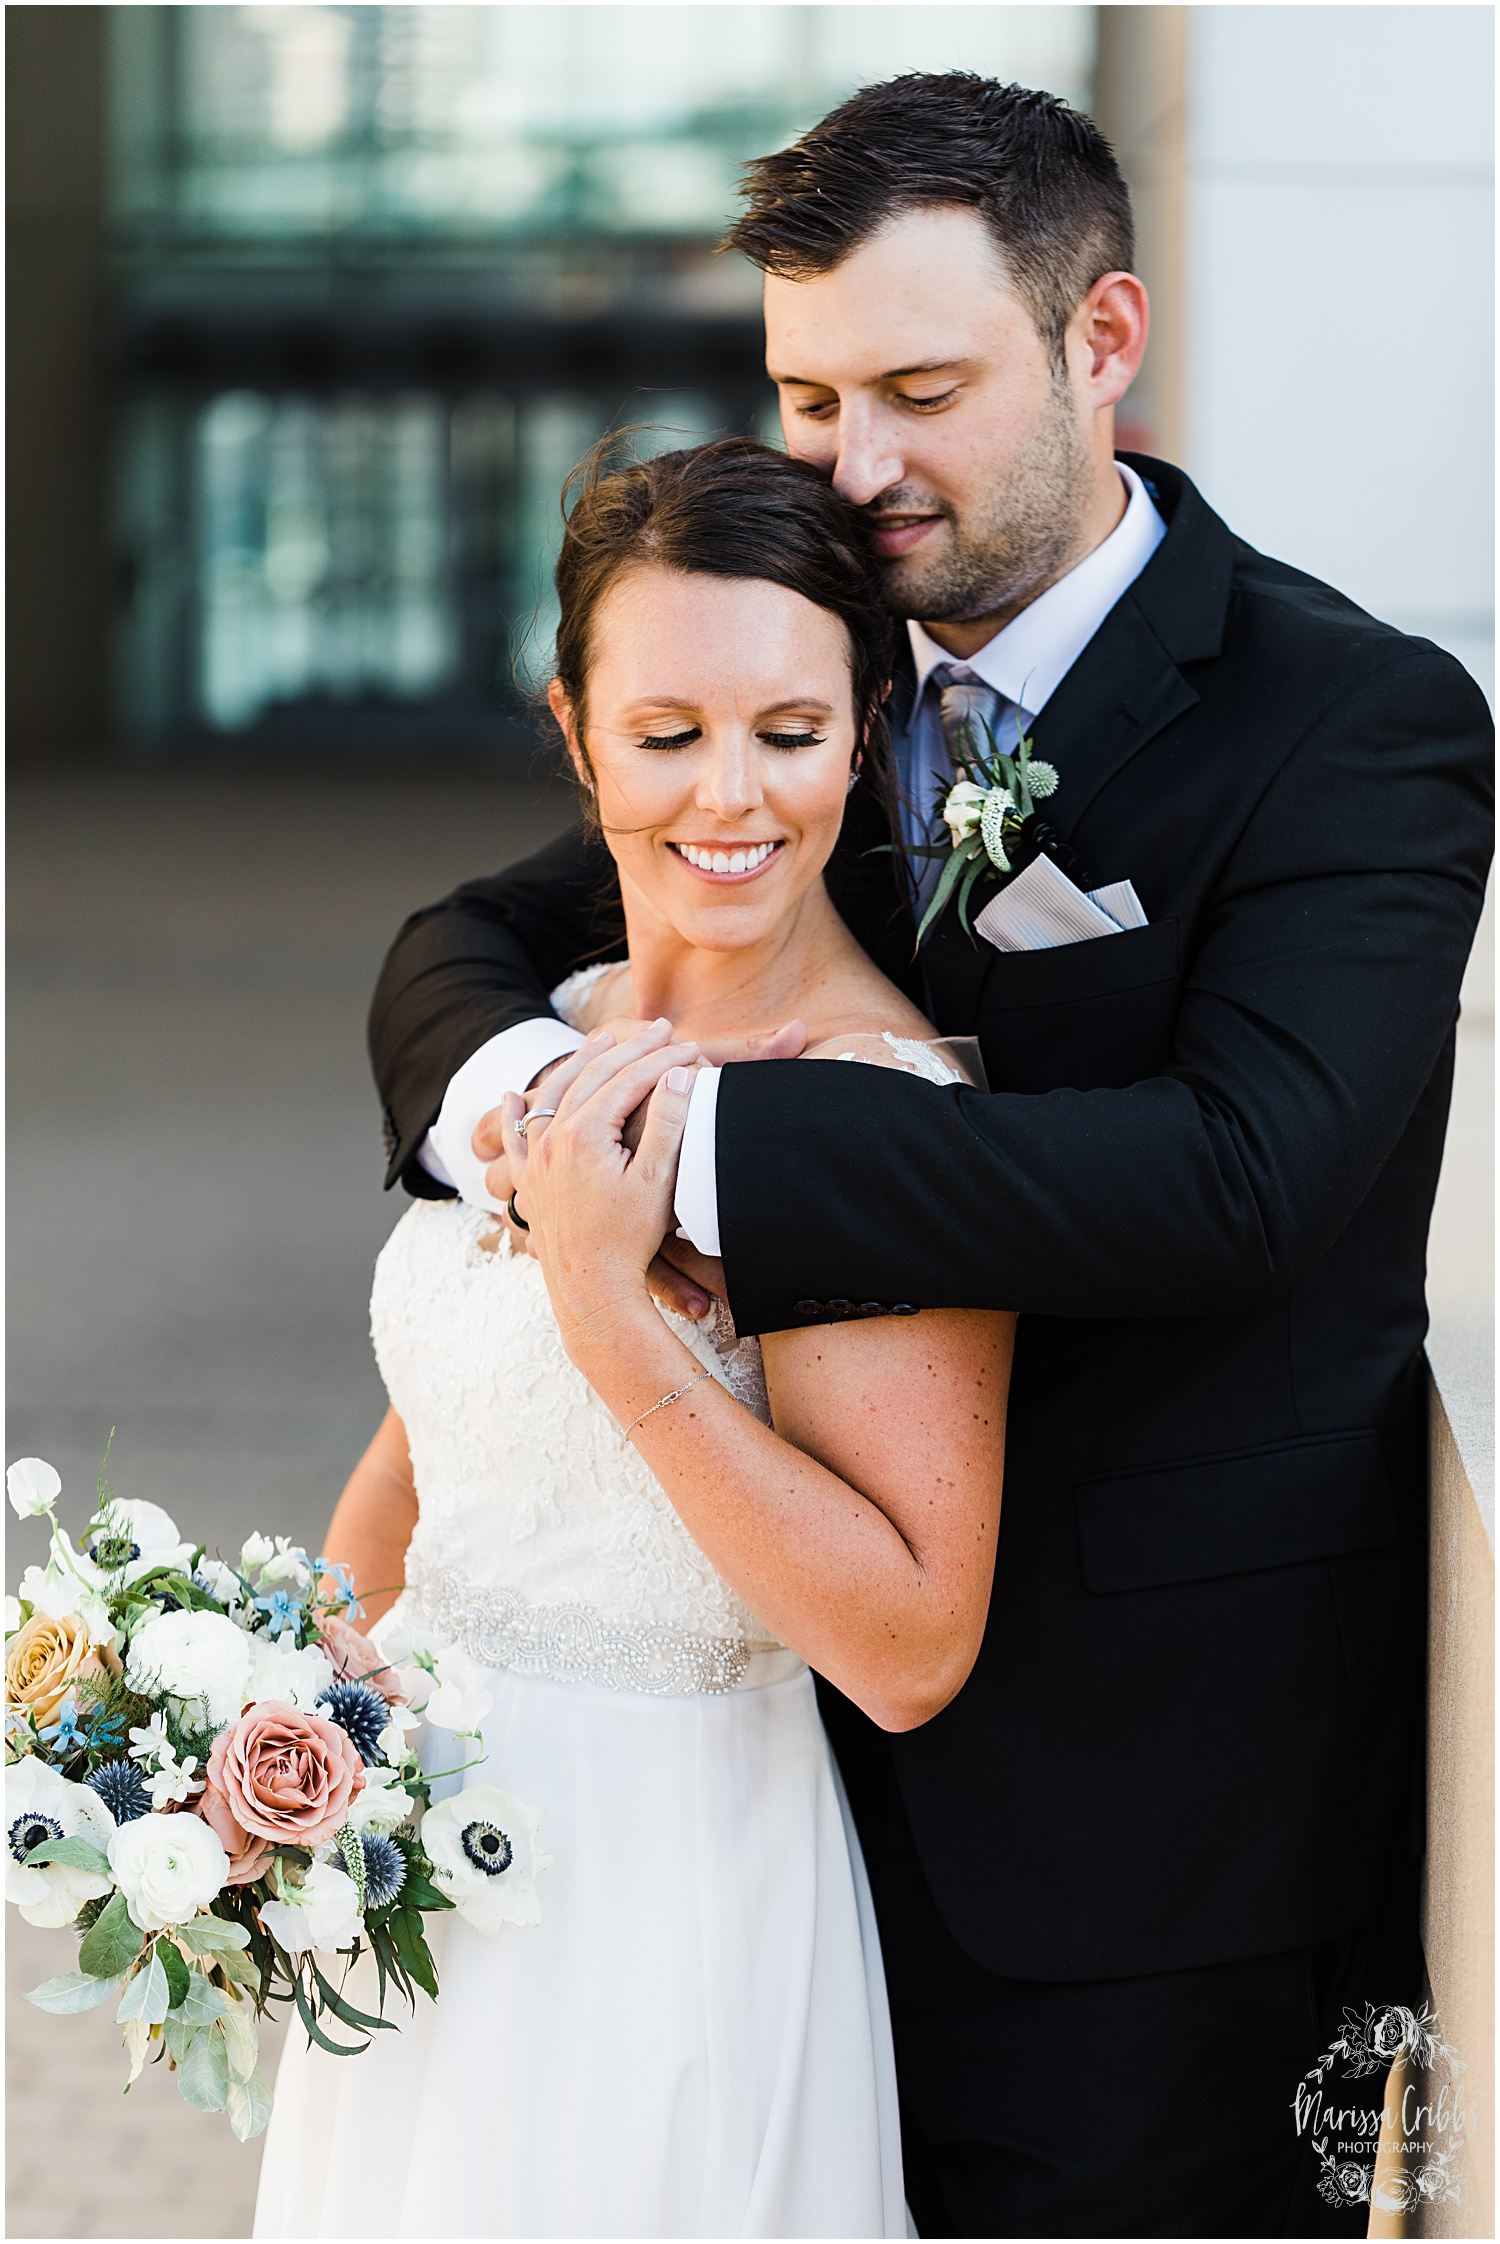 KELLY & MITCH MARRIED BLOG | MARISSA CRIBBS PHOTOGRAPHY | THE EVERLY EVENT SPACE_8887.jpg